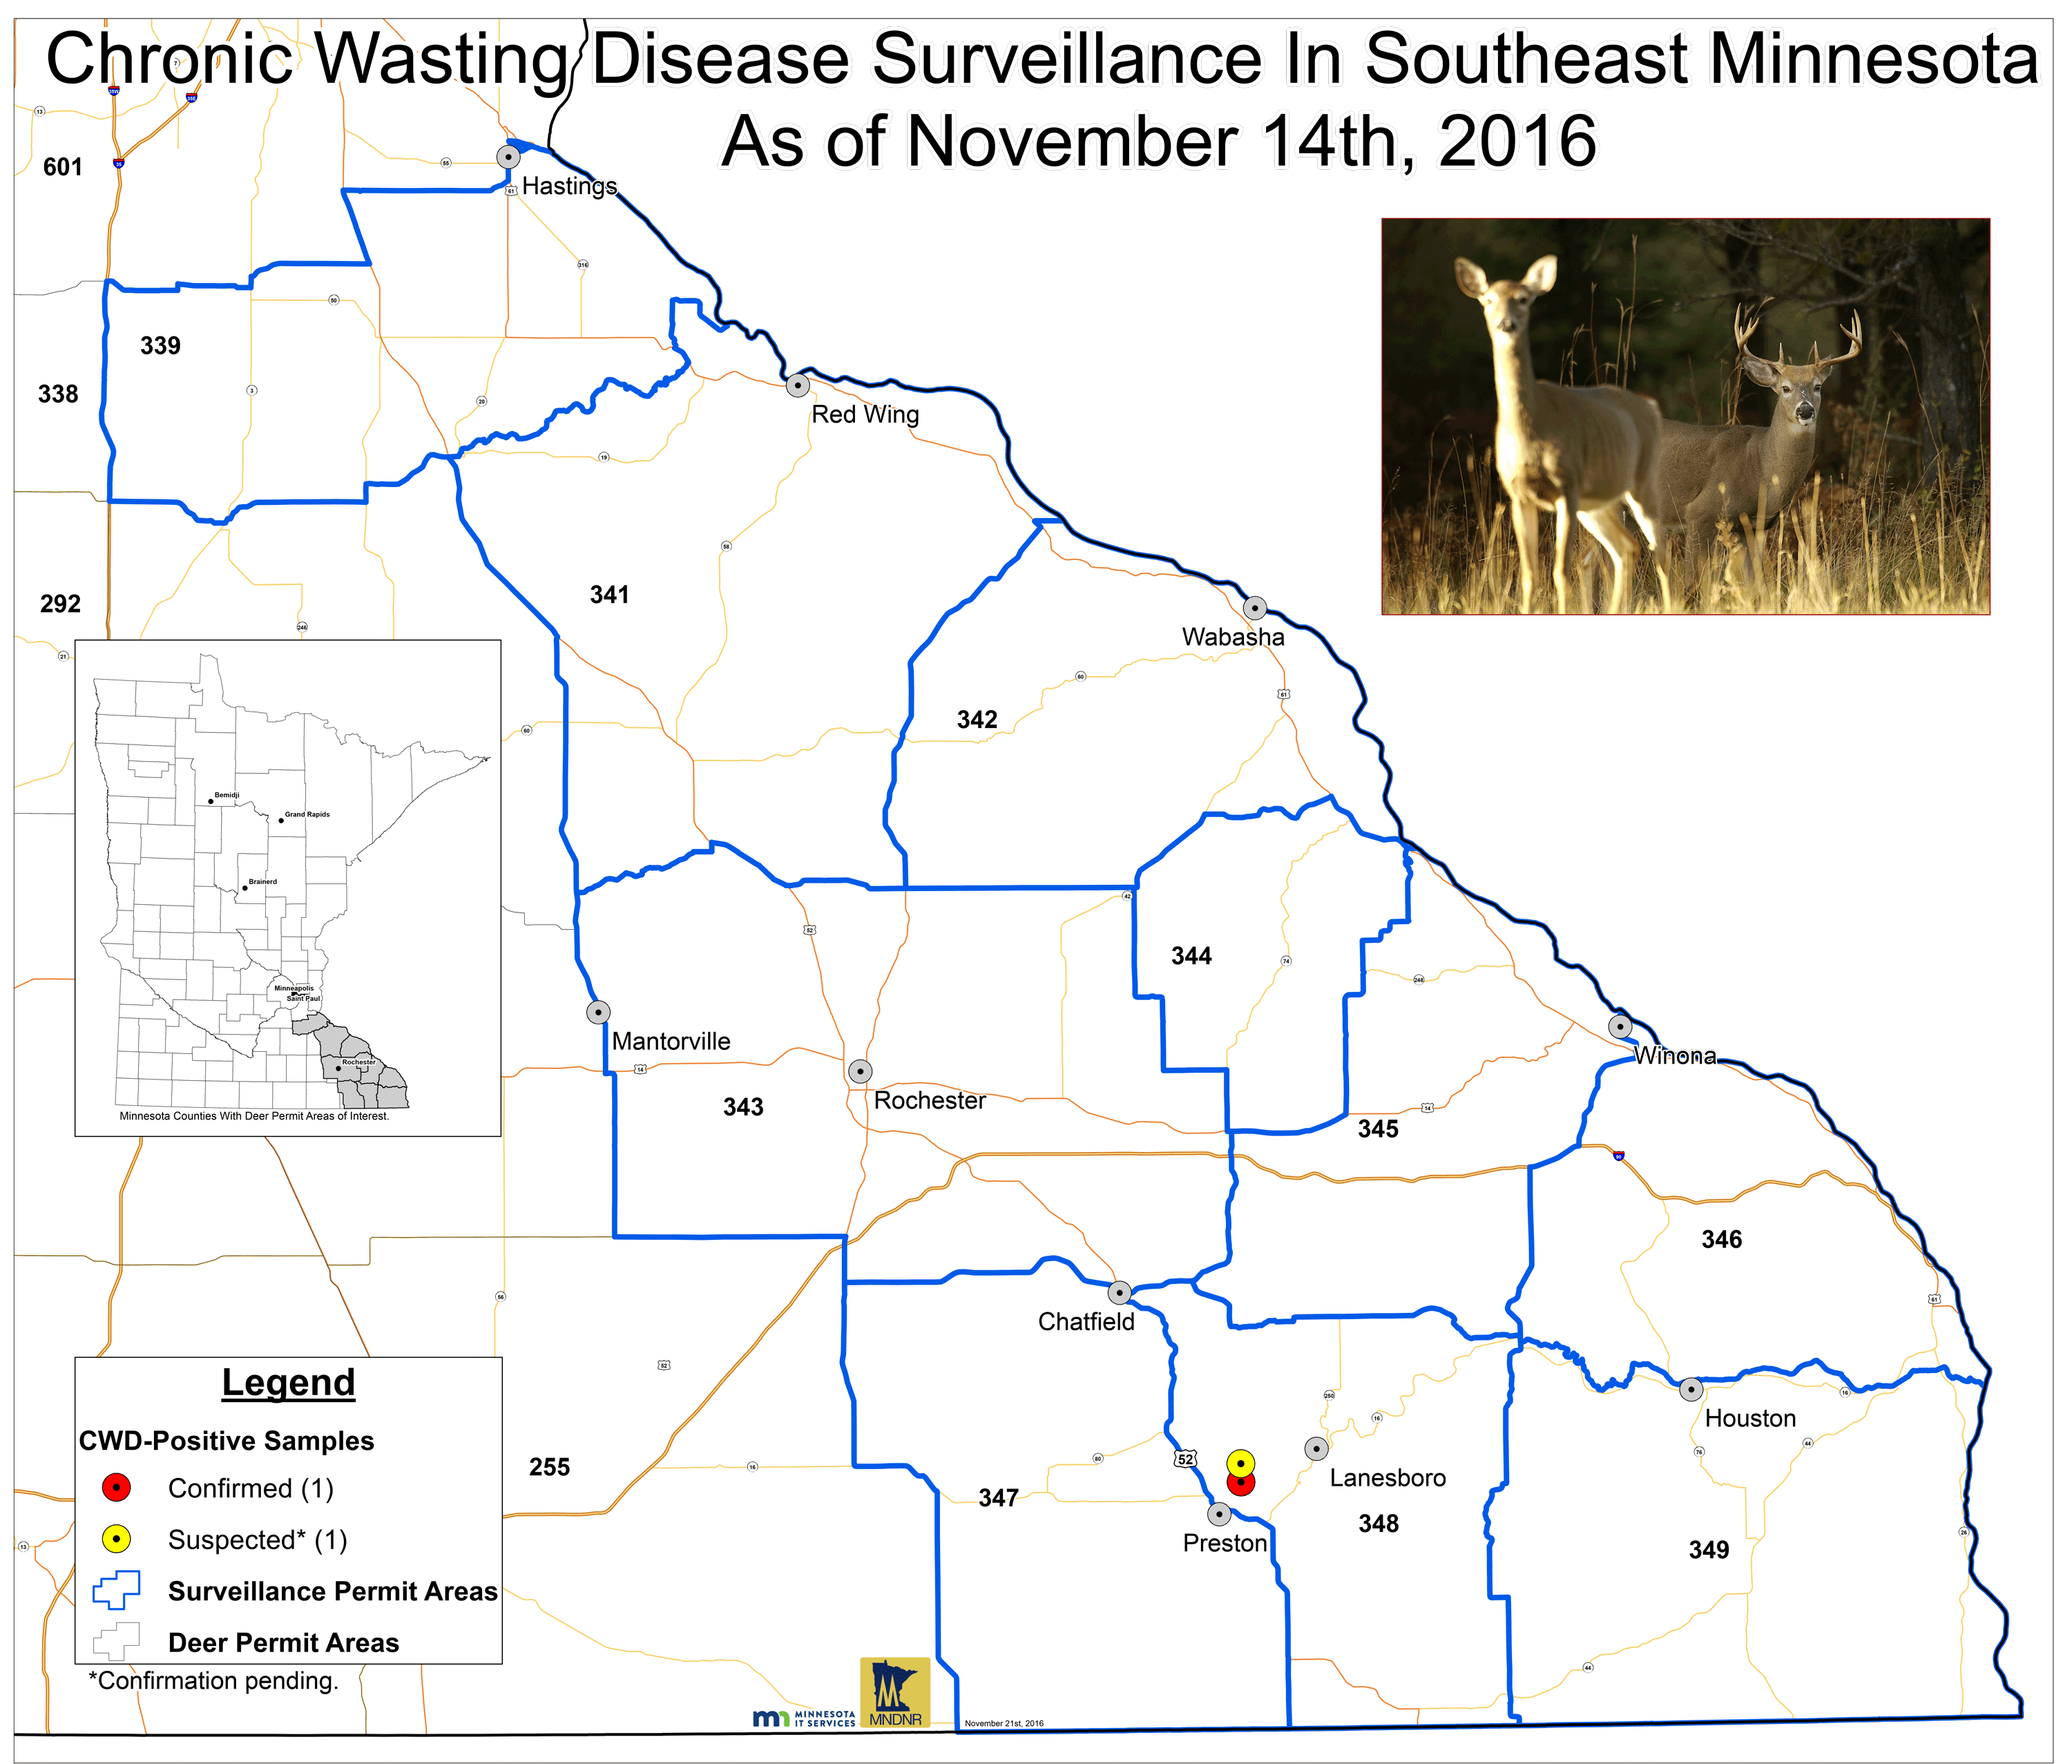 Chronic wasting disease surveillance